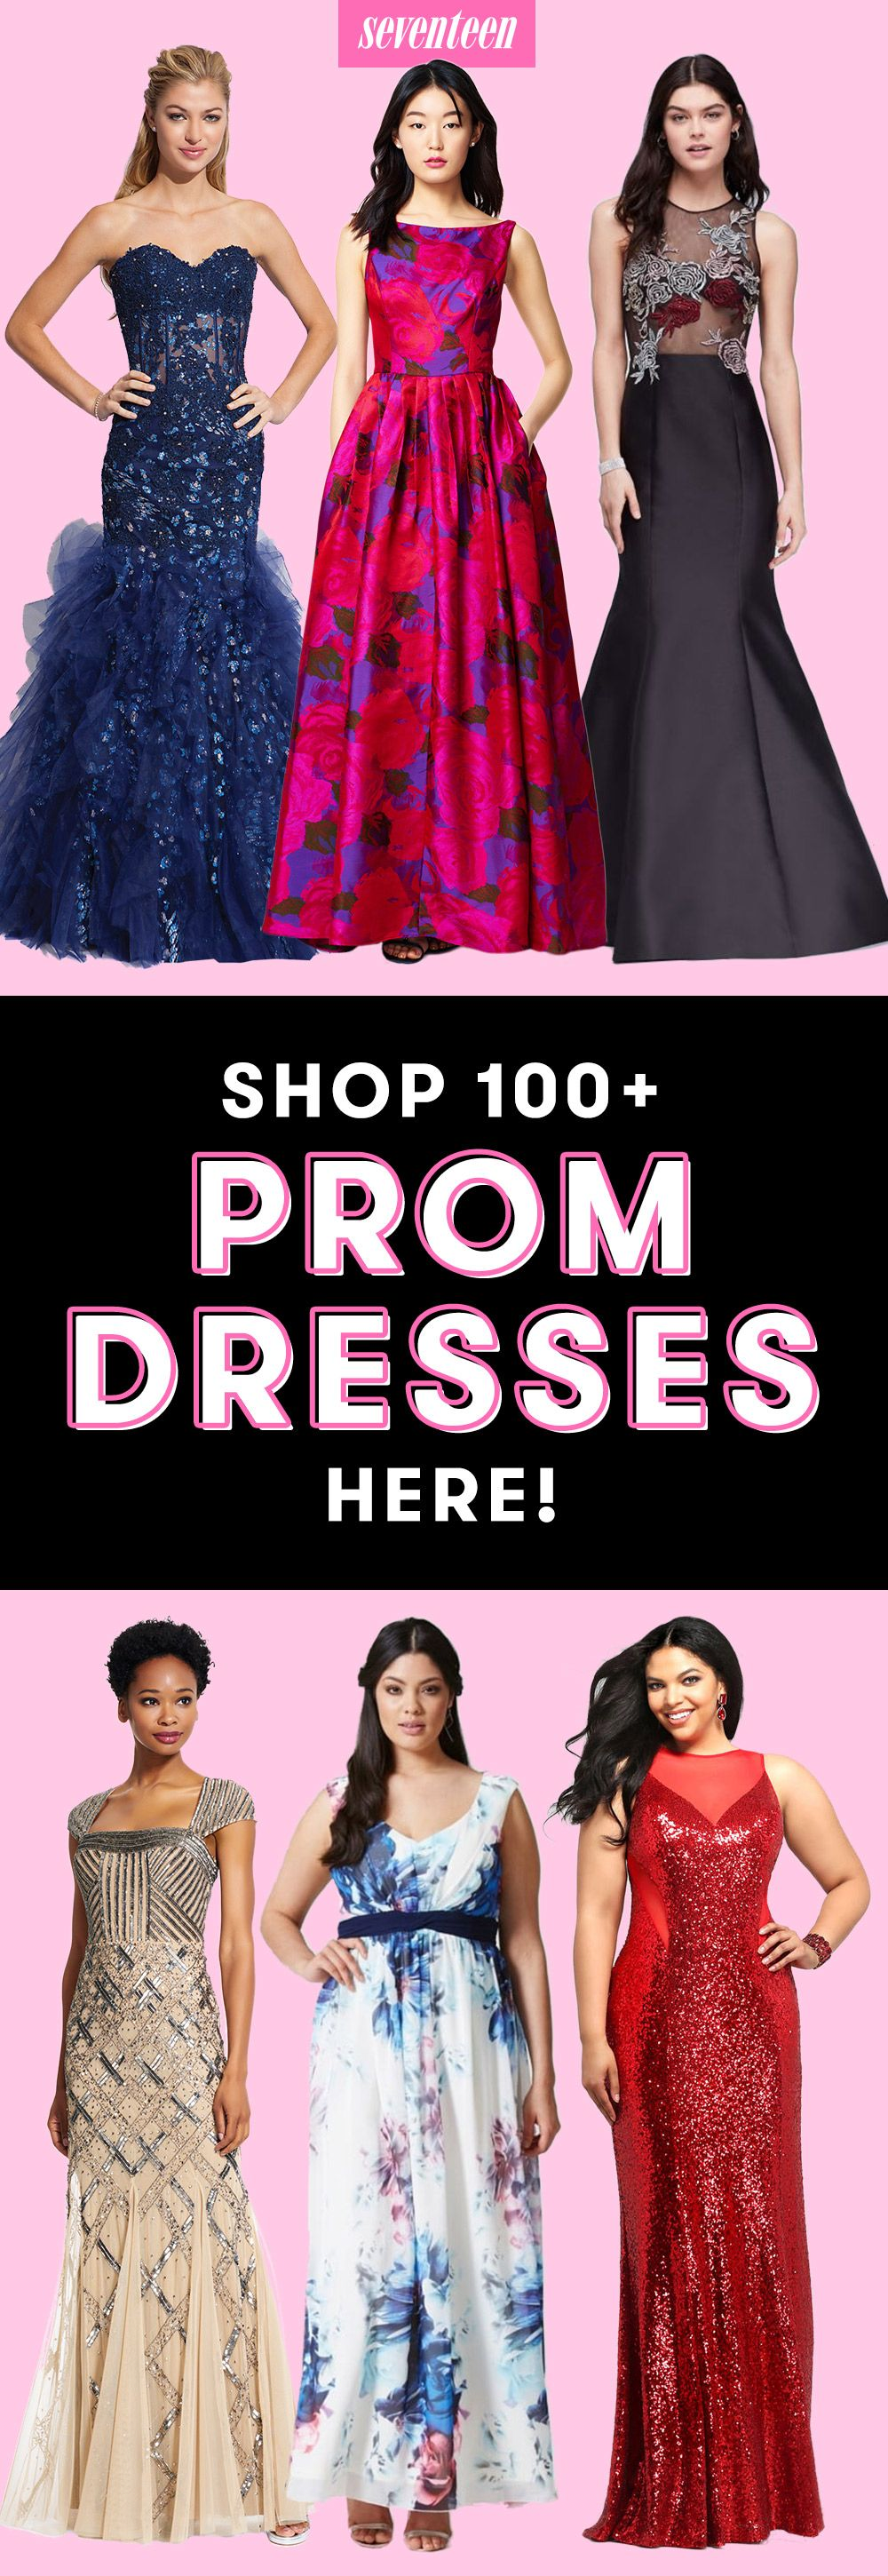 17 Best Rental Prom Dresses for Under $100 - Where to Rent Prom Dresses